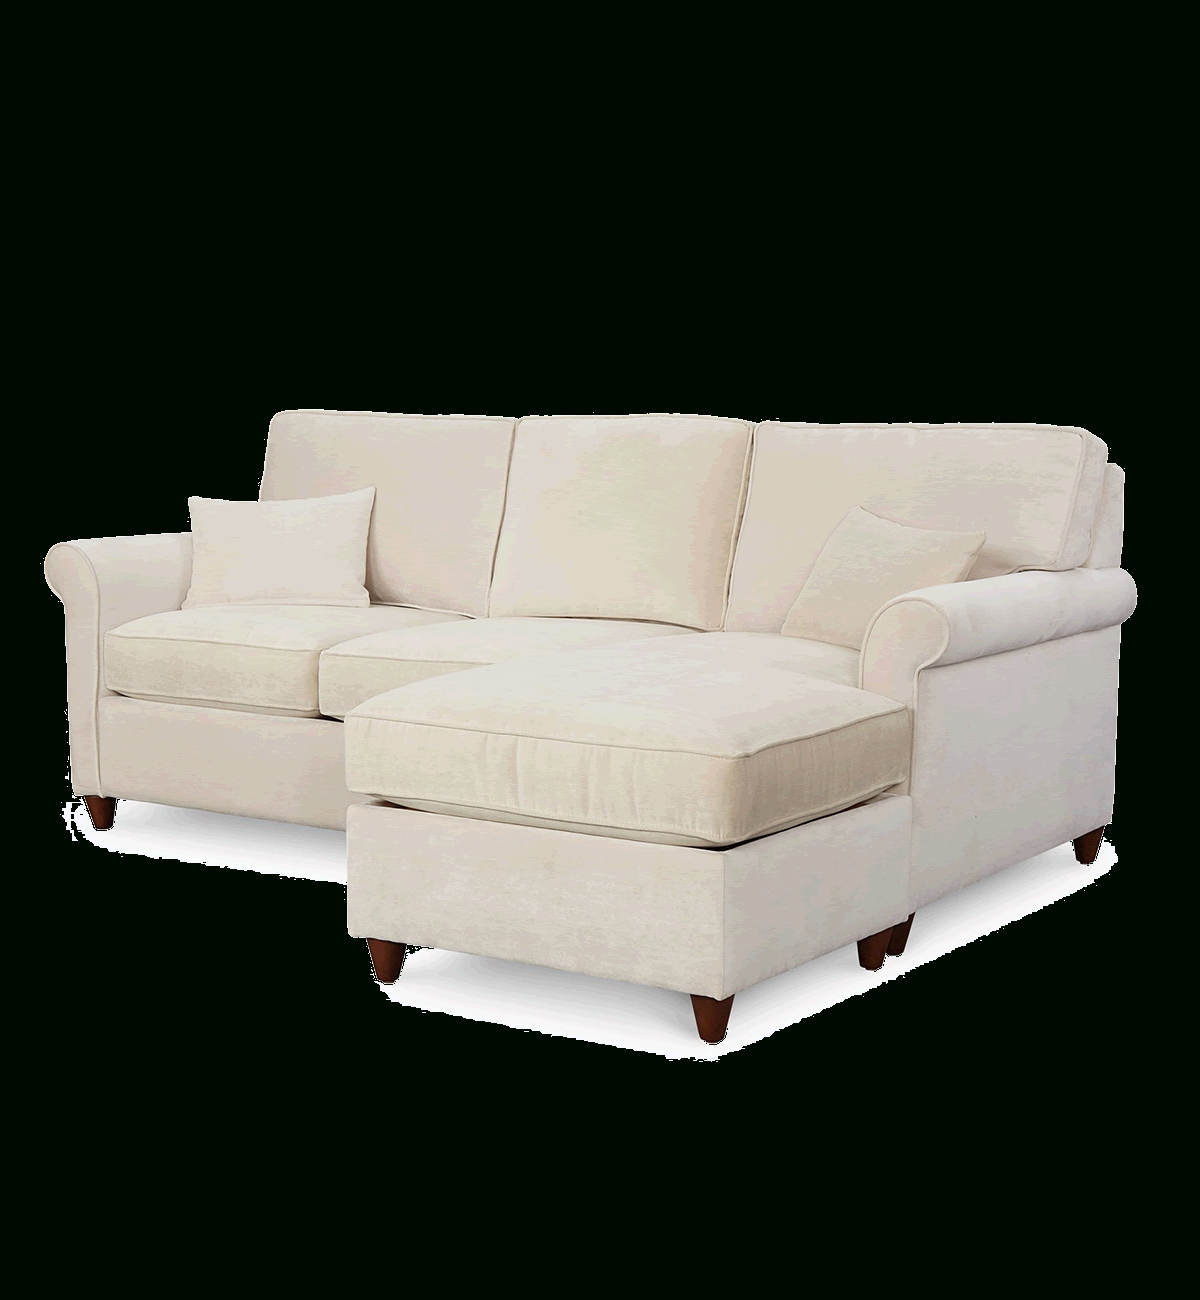 Best And Newest Macys Sectional Sofas Regarding Sectional Sofas Couches And Sofas – Macy's (View 5 of 20)